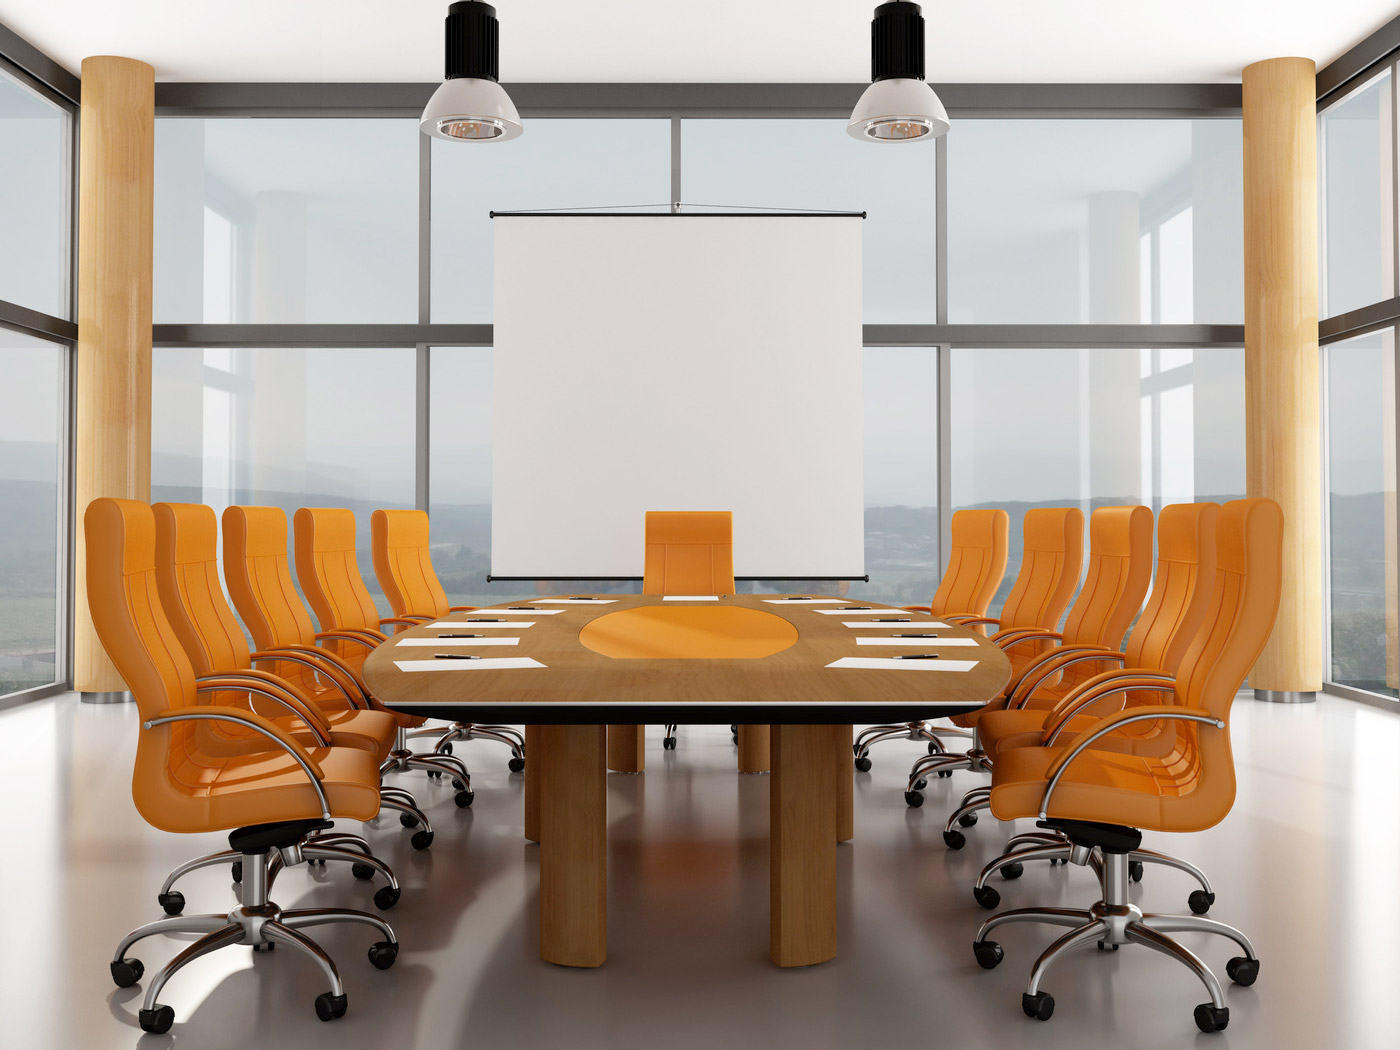 photodune-5294391-meeting-room-m1